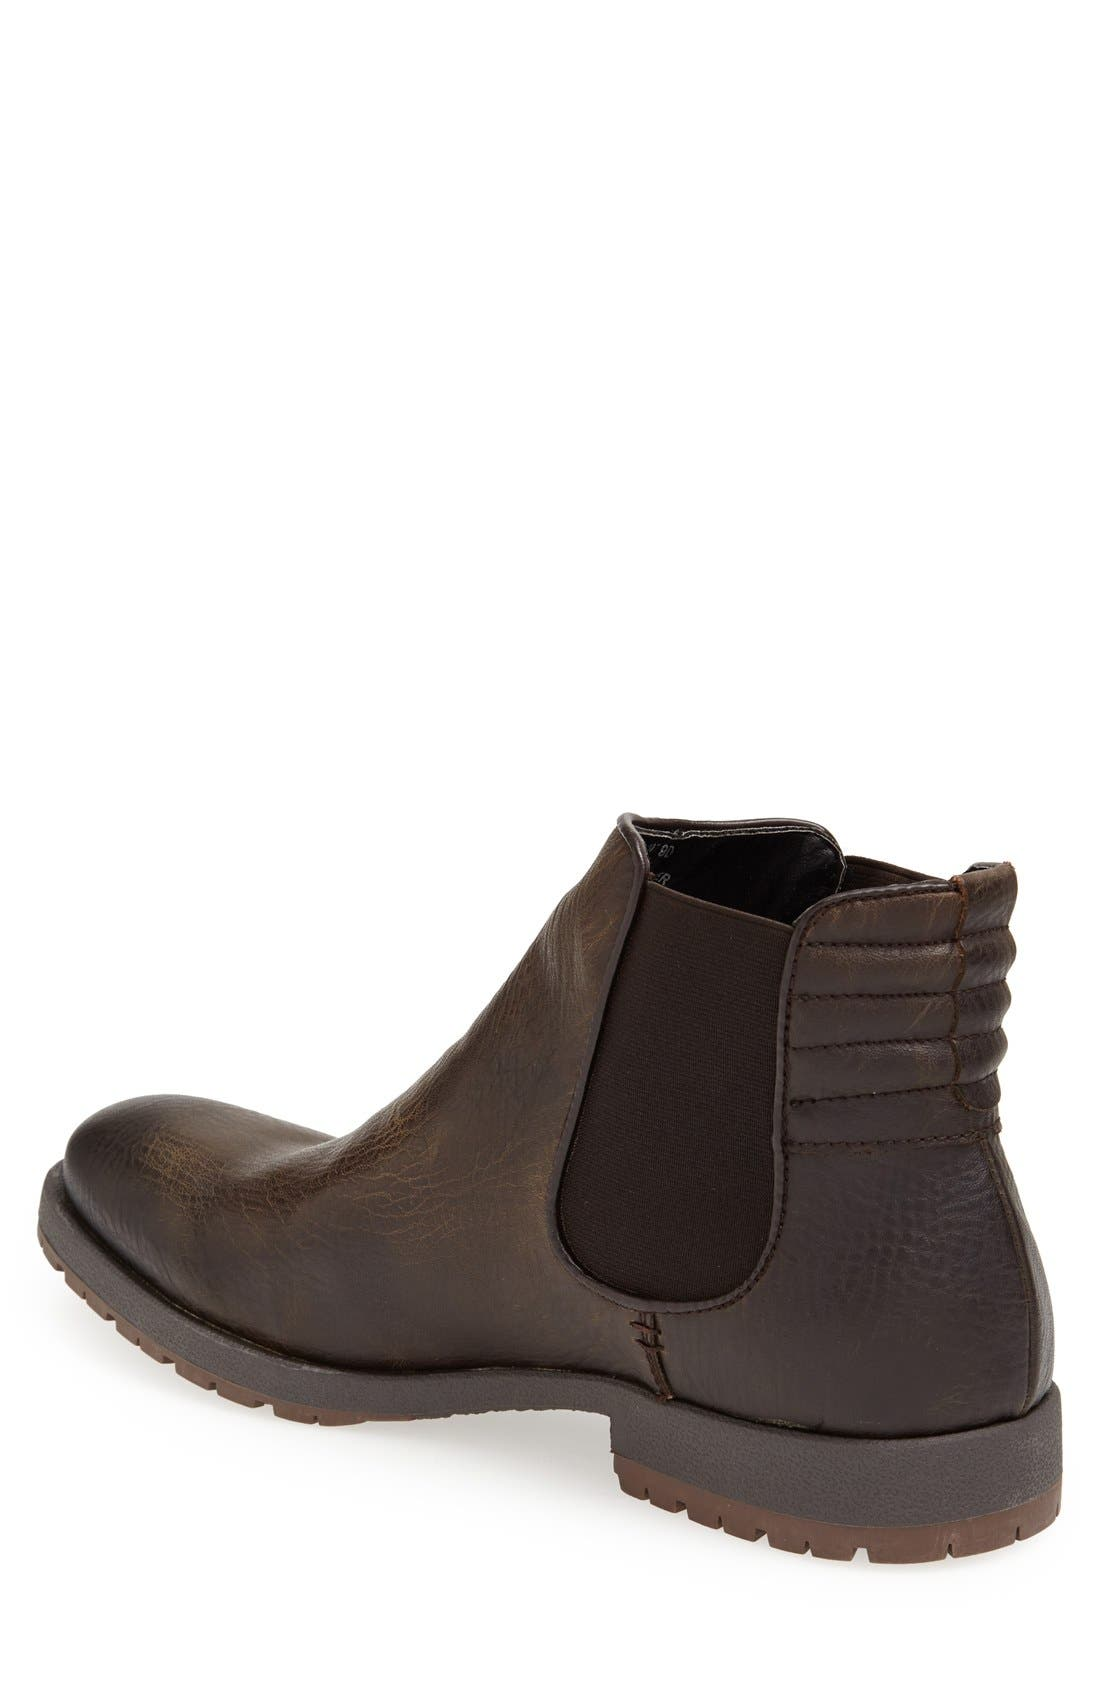 'Lazo' Chelsea Boot,                             Alternate thumbnail 3, color,                             207